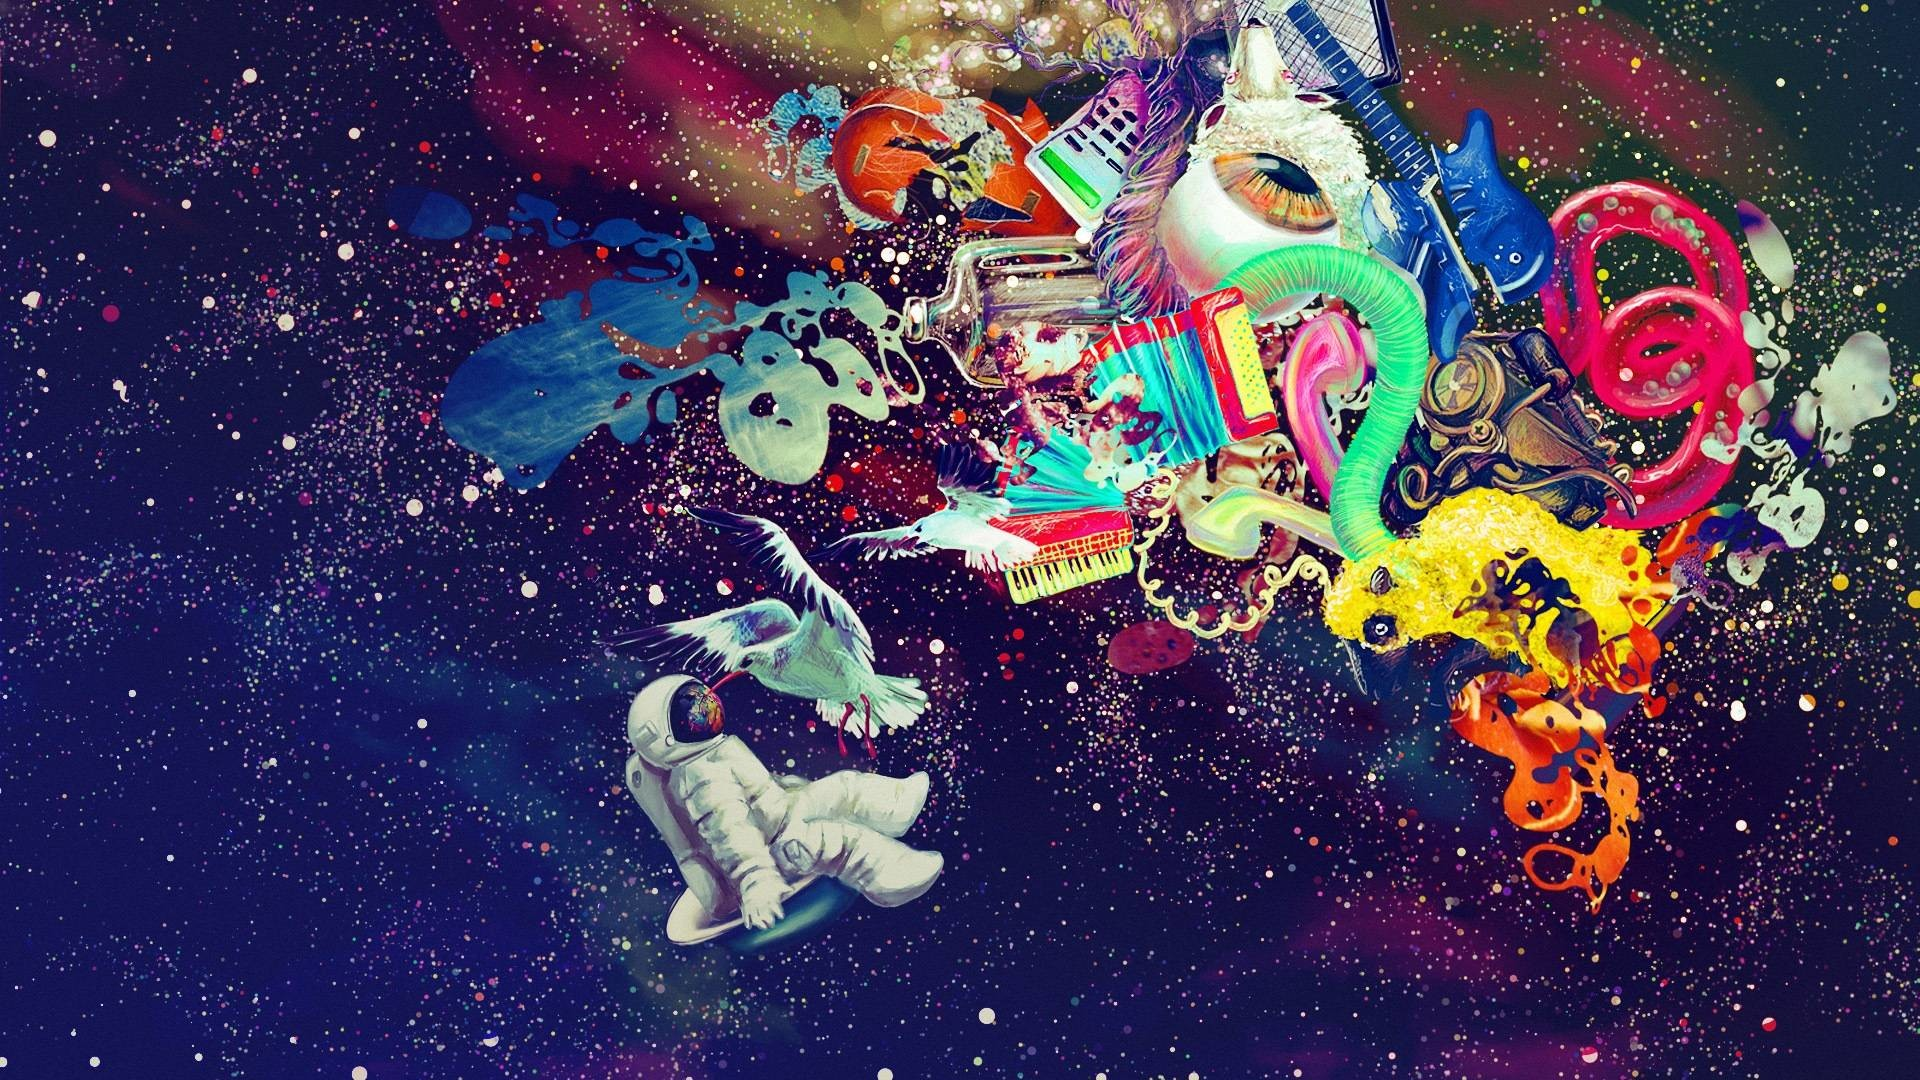 1920x1080 Trippy HD Desktop Wallpaper 23352